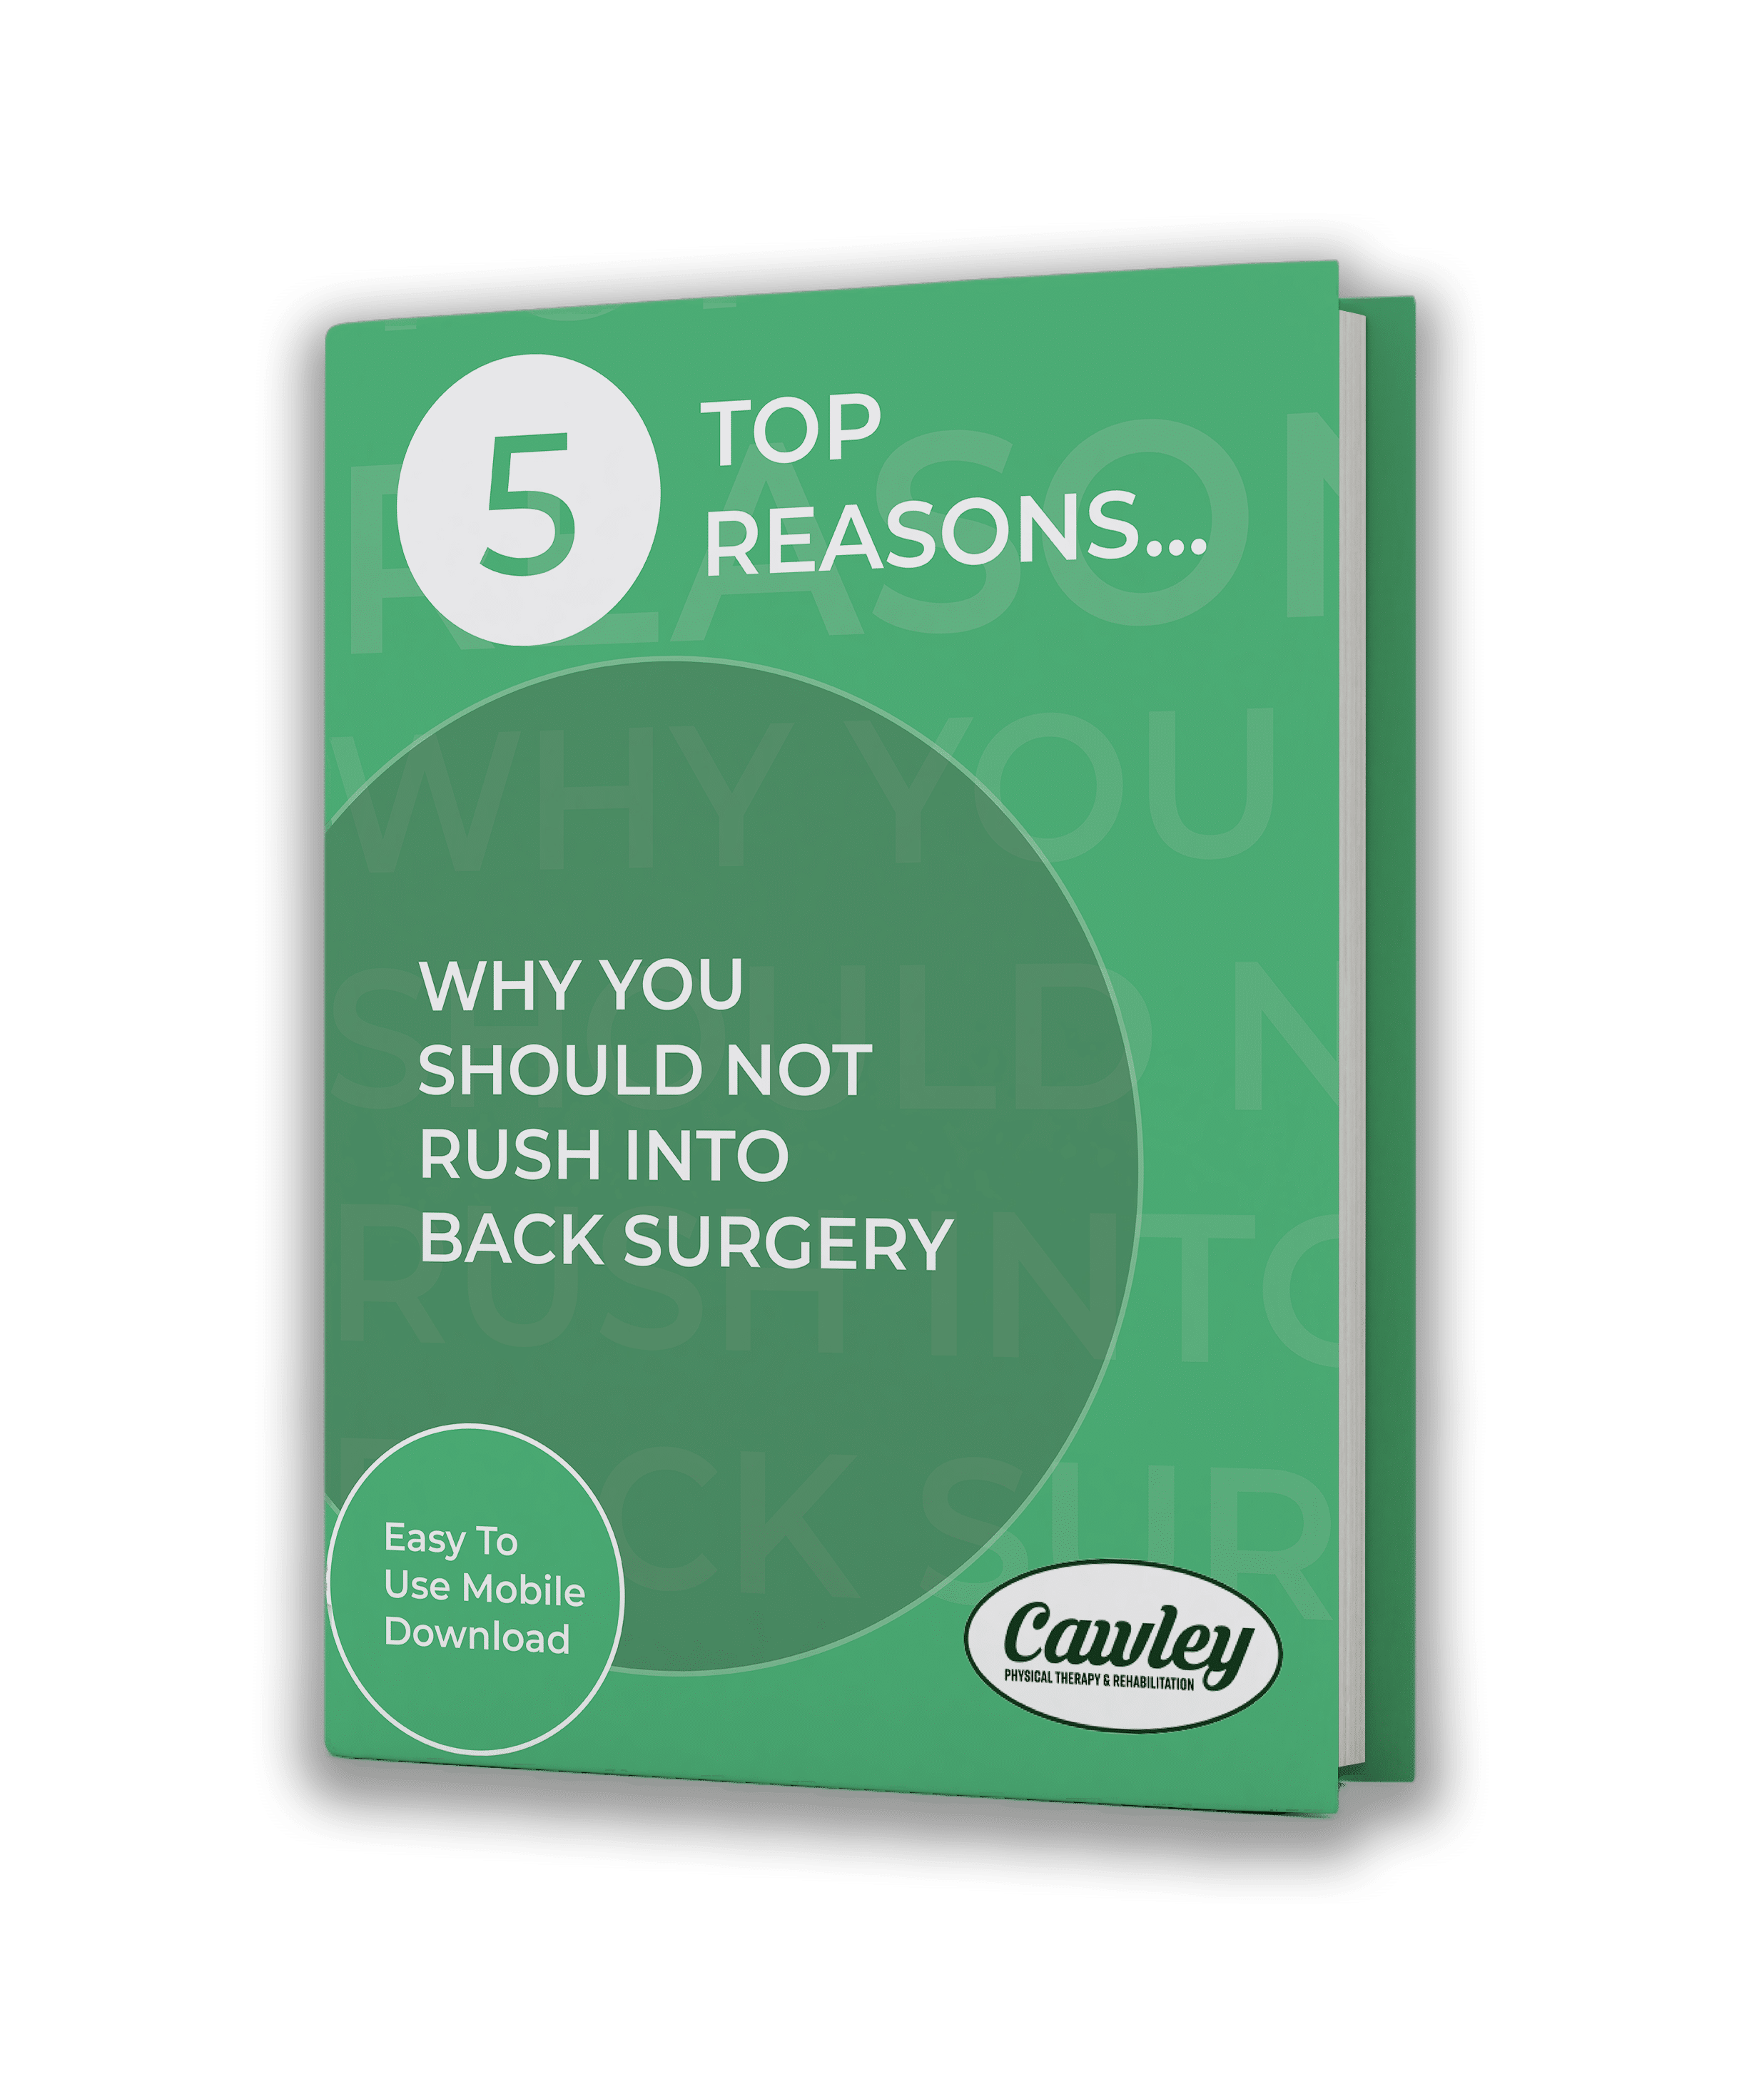 5 Top Reasons Why You Should Not Rush into Back Surgery